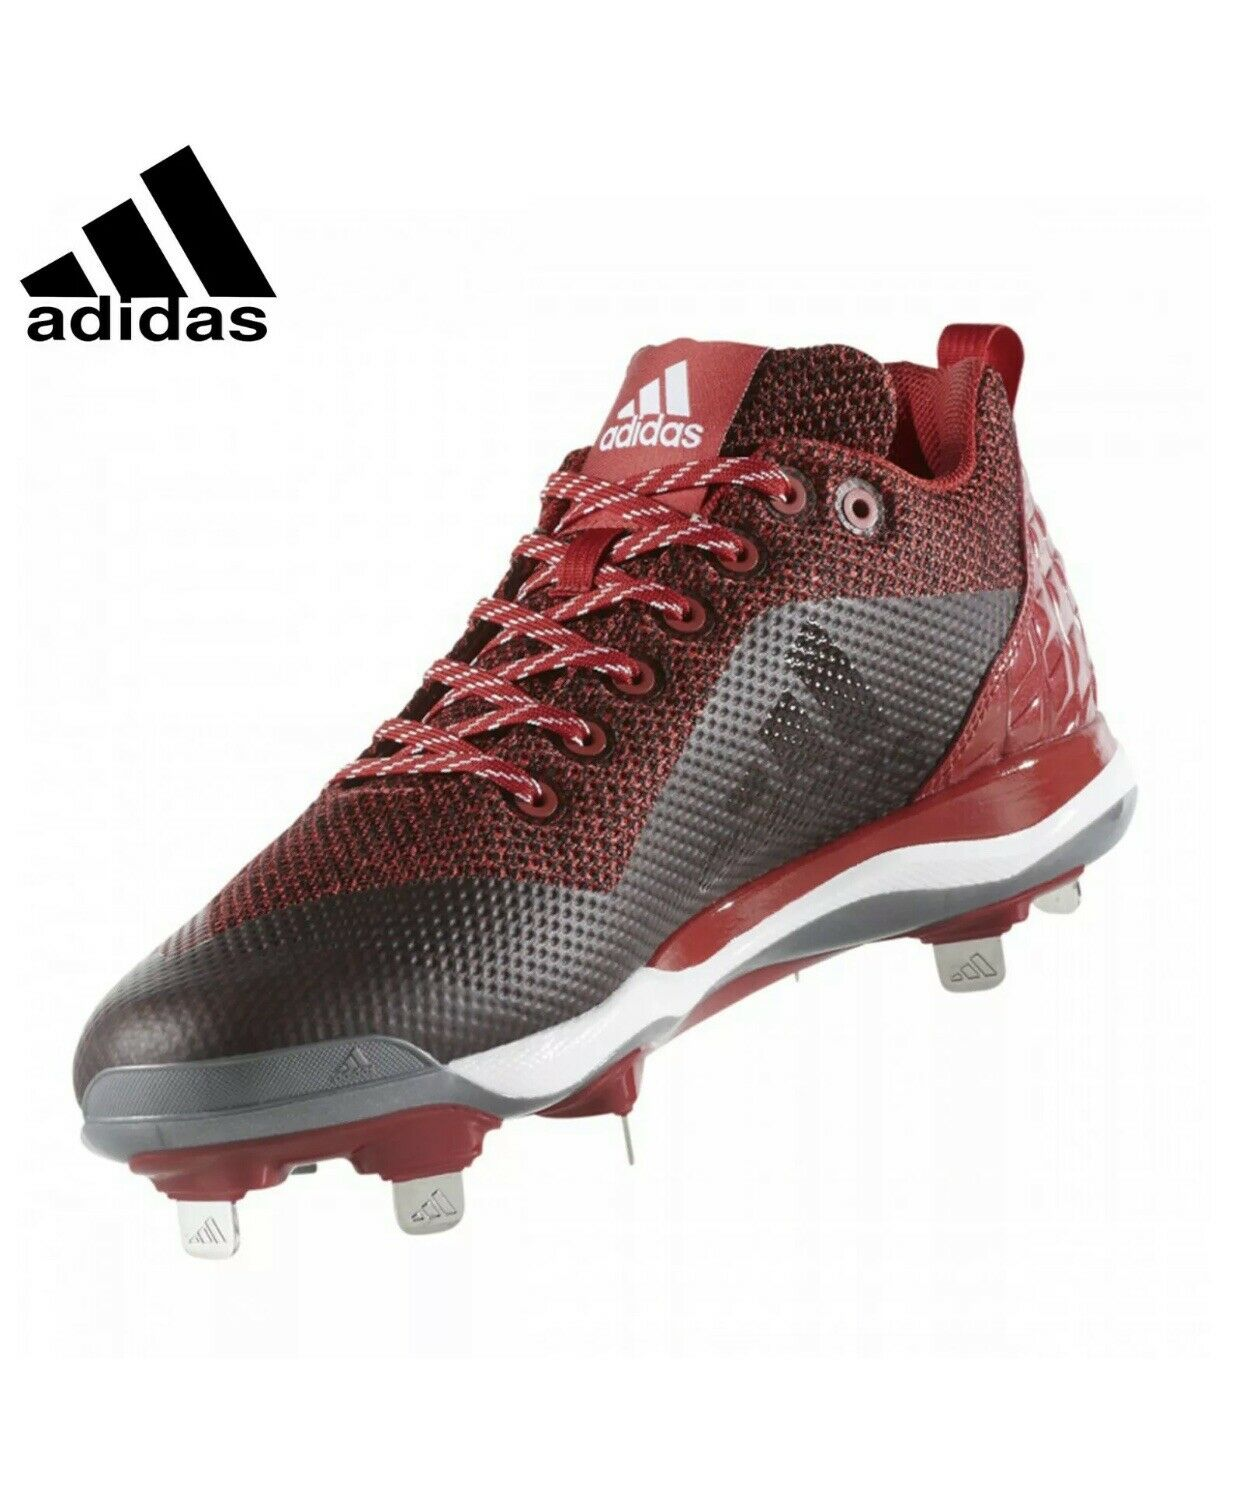 Adidas Power Alley 5 Men's Low Metal Baseball Cleats   Red Size 10.5 (B39182)